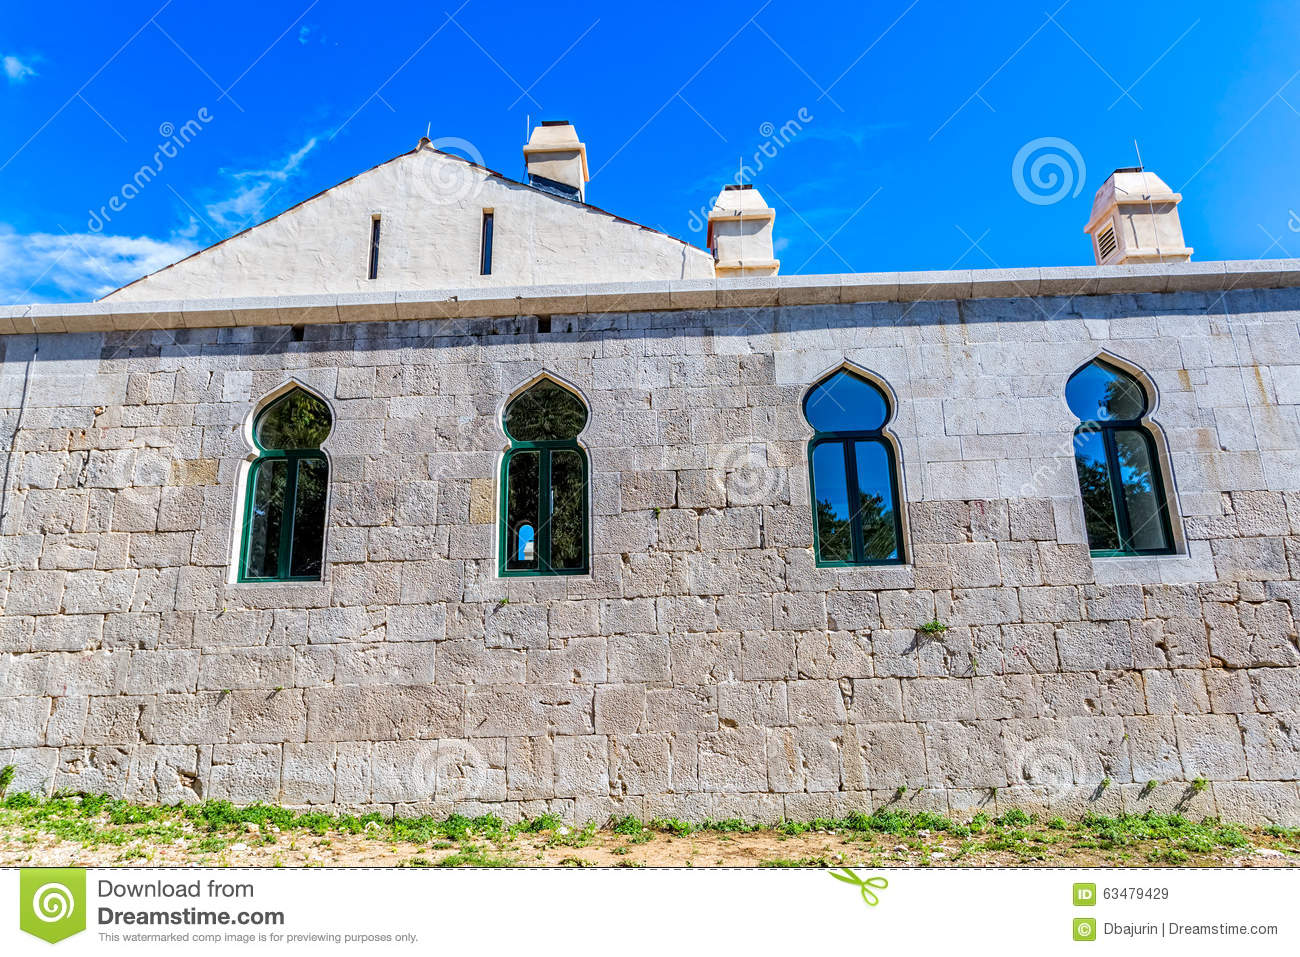 Medieval Building Maskovica Han In Croatia Stock Photo ...